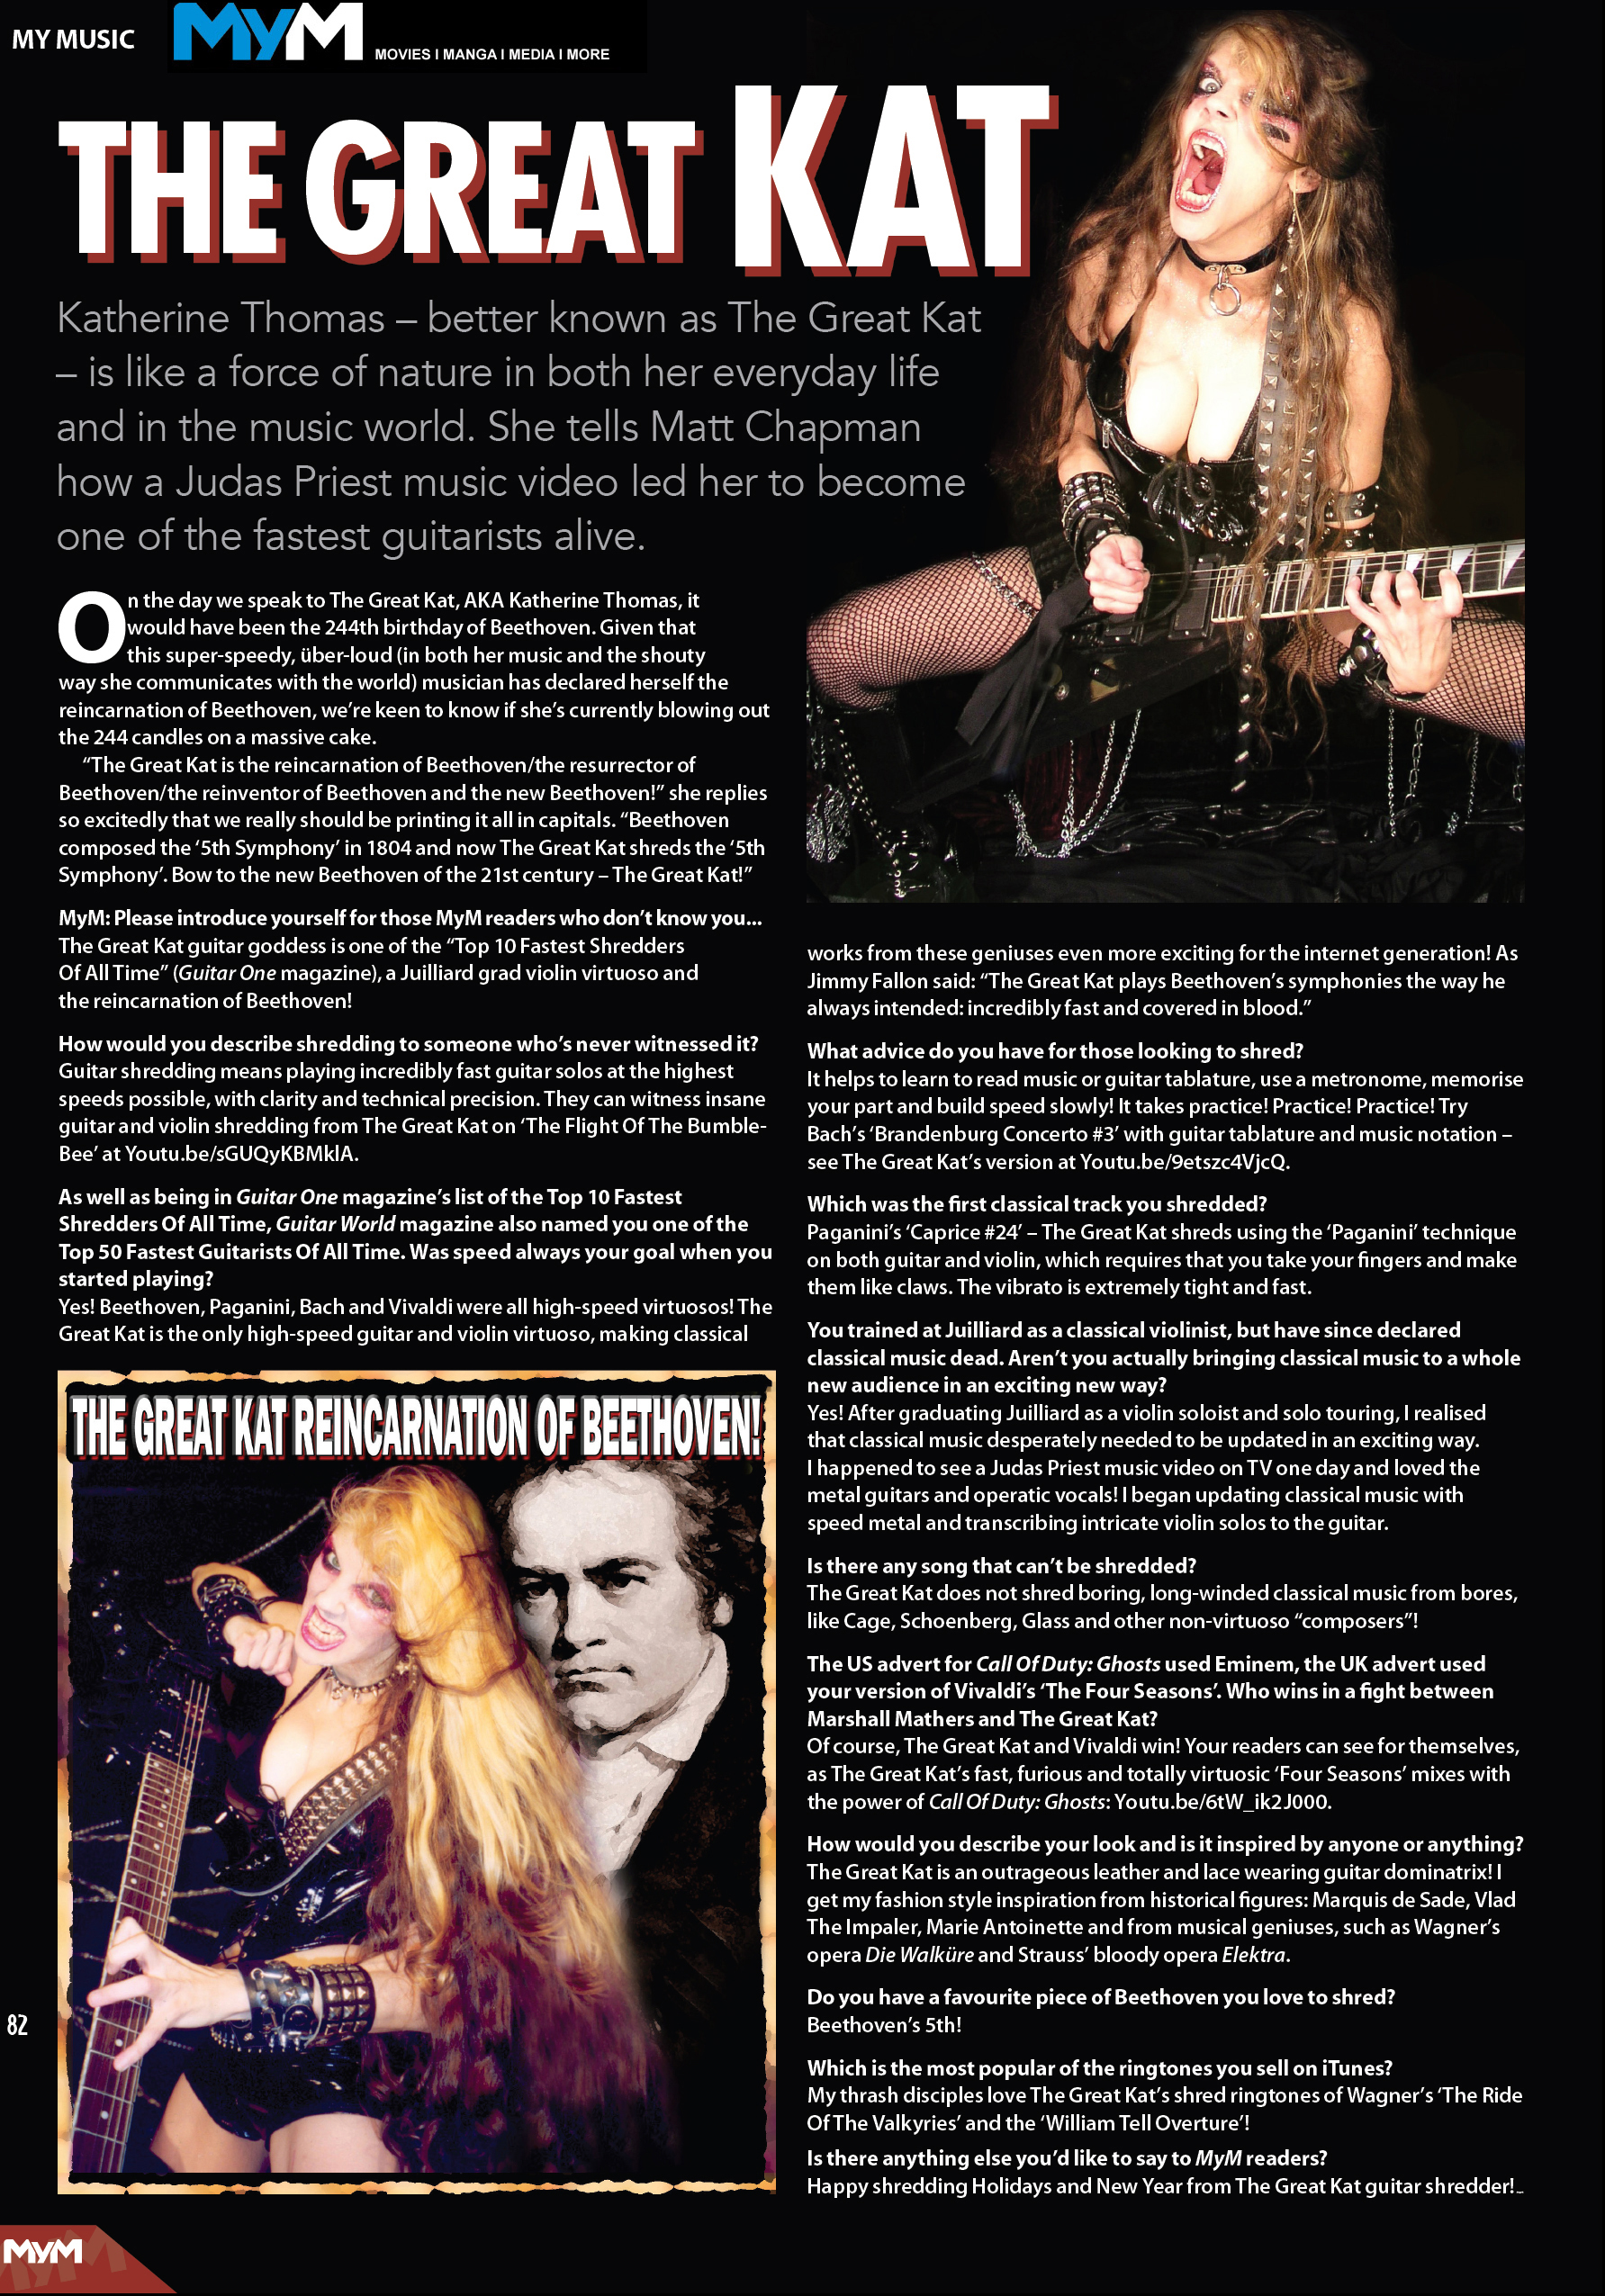 "MYM MAGAZINE'S INTERVIEW WITH THE GREAT KAT OUT NOW - ""THE GREAT KAT IS A FORCE OF NATURE…ONE OF THE FASTEST GUITARISTS ALIVE""! ""The Great Kat - is like a force of nature in both her everyday life and in the music world. She tells Matt Chapman how a Judas Priest music video led her to become one of the fastest guitarists alive."" - by Matt Chapman, MyM Magazine - Movies, Anime, Manga, Games & More - Issue #34"